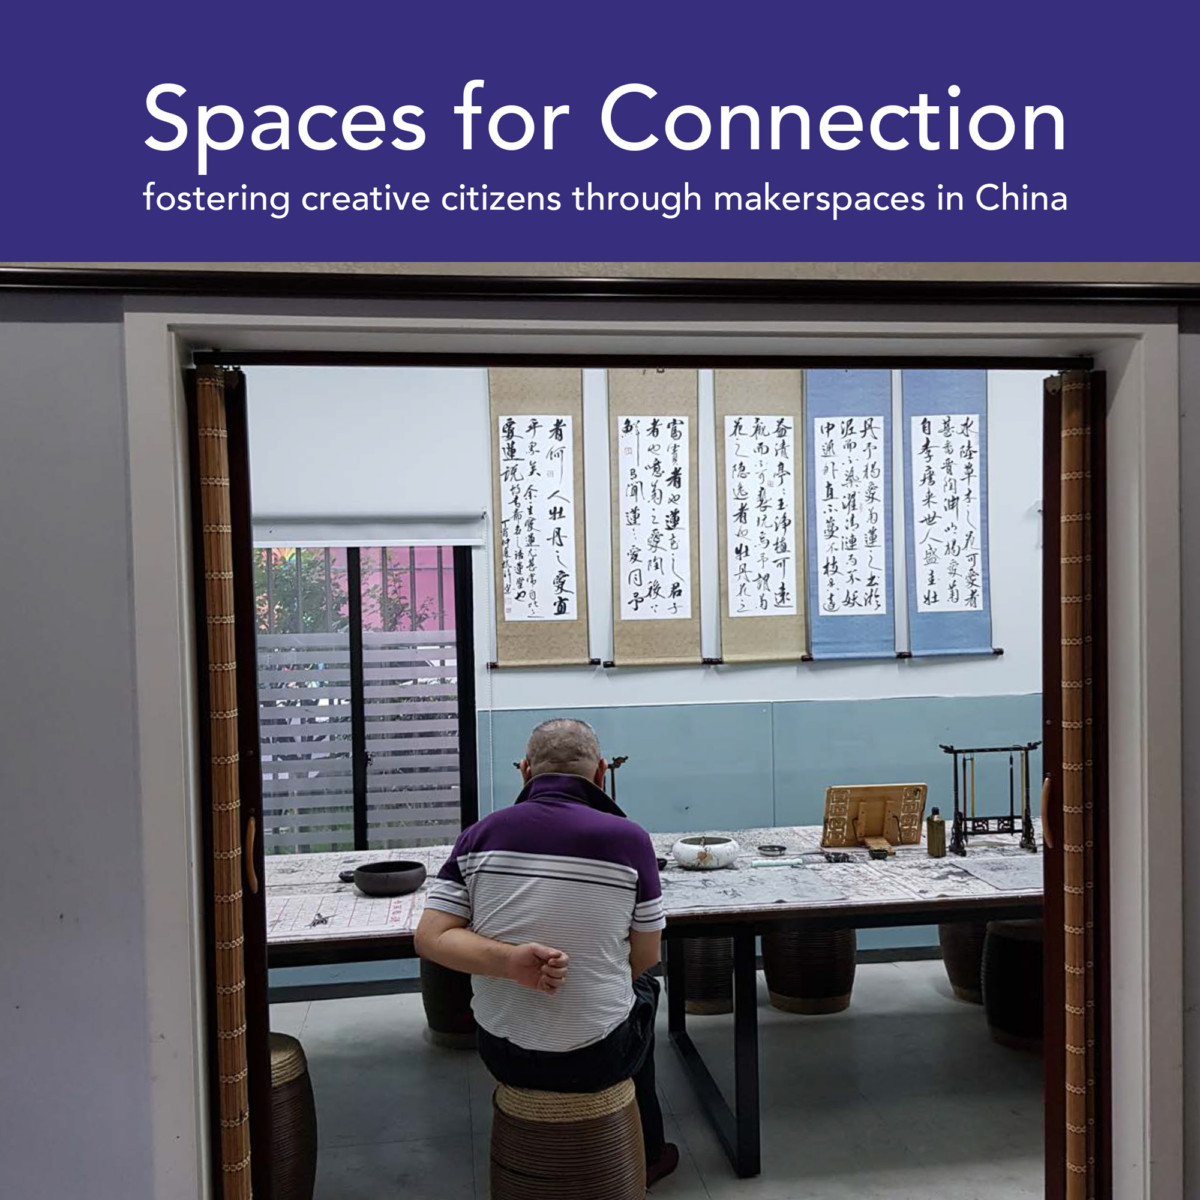 Spaces for Connection: Fostering Creative Citizens Through Makerspaces in China